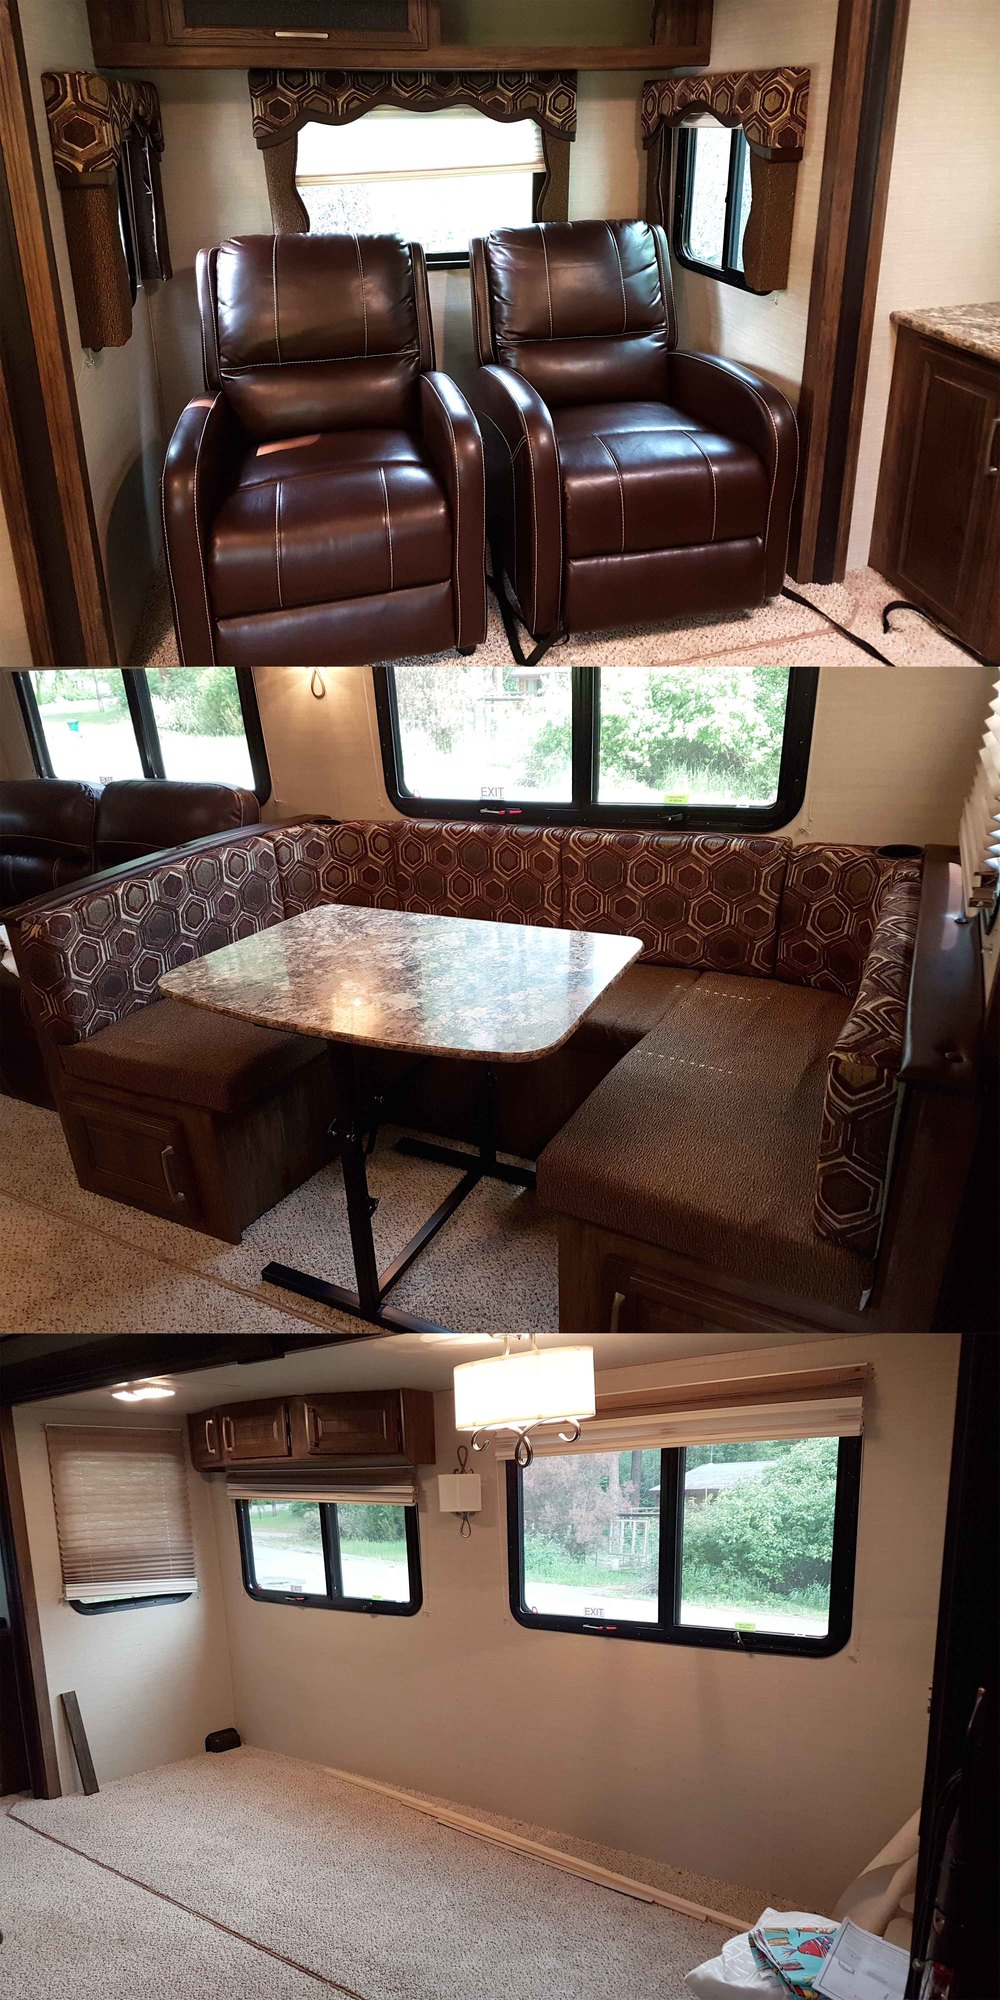 "Some things had to go! Top: Recliners where my office is now (see first blog photo). Middle: Oversized eating space. Bottom: The large ""bump-out"" gutted. We removed 10 padded window coverings, two recliners, a small sofa bed, the eating nook, and replaced the RV mattress with our own. Not to mention many other small upgrades and alterations!"